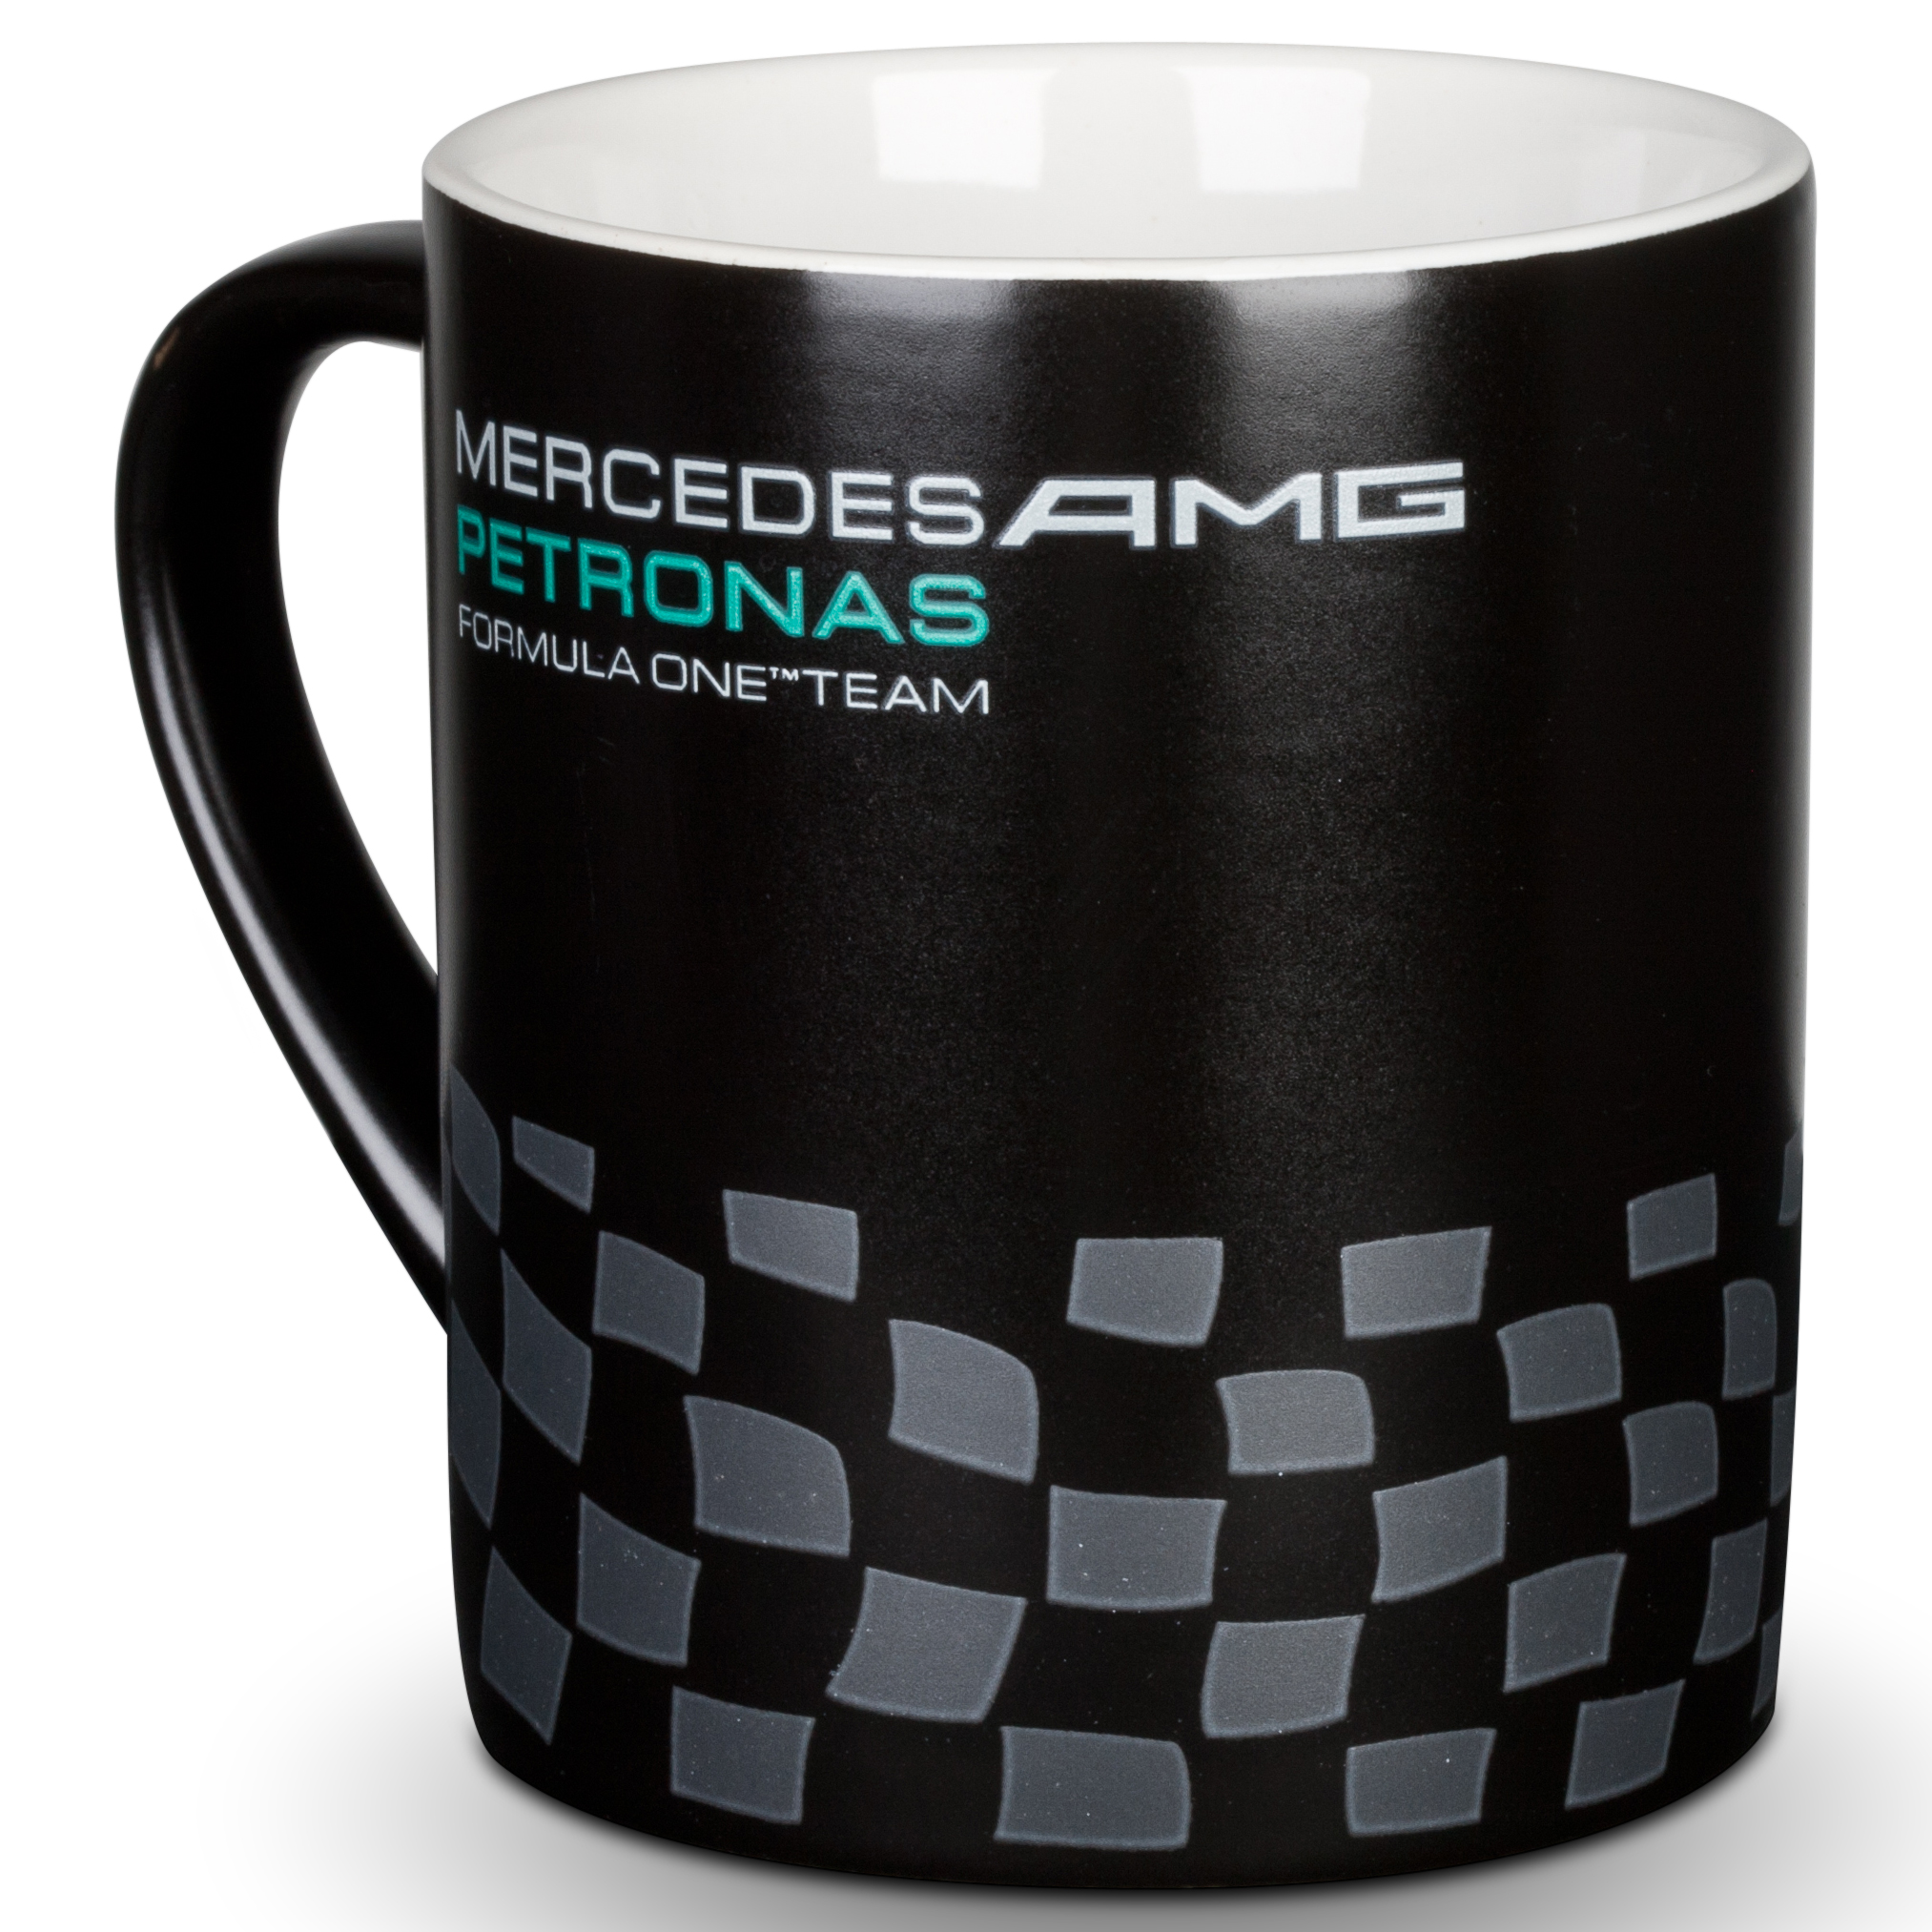 Mercedes AMG Petronas Formula One Team Mug - Black